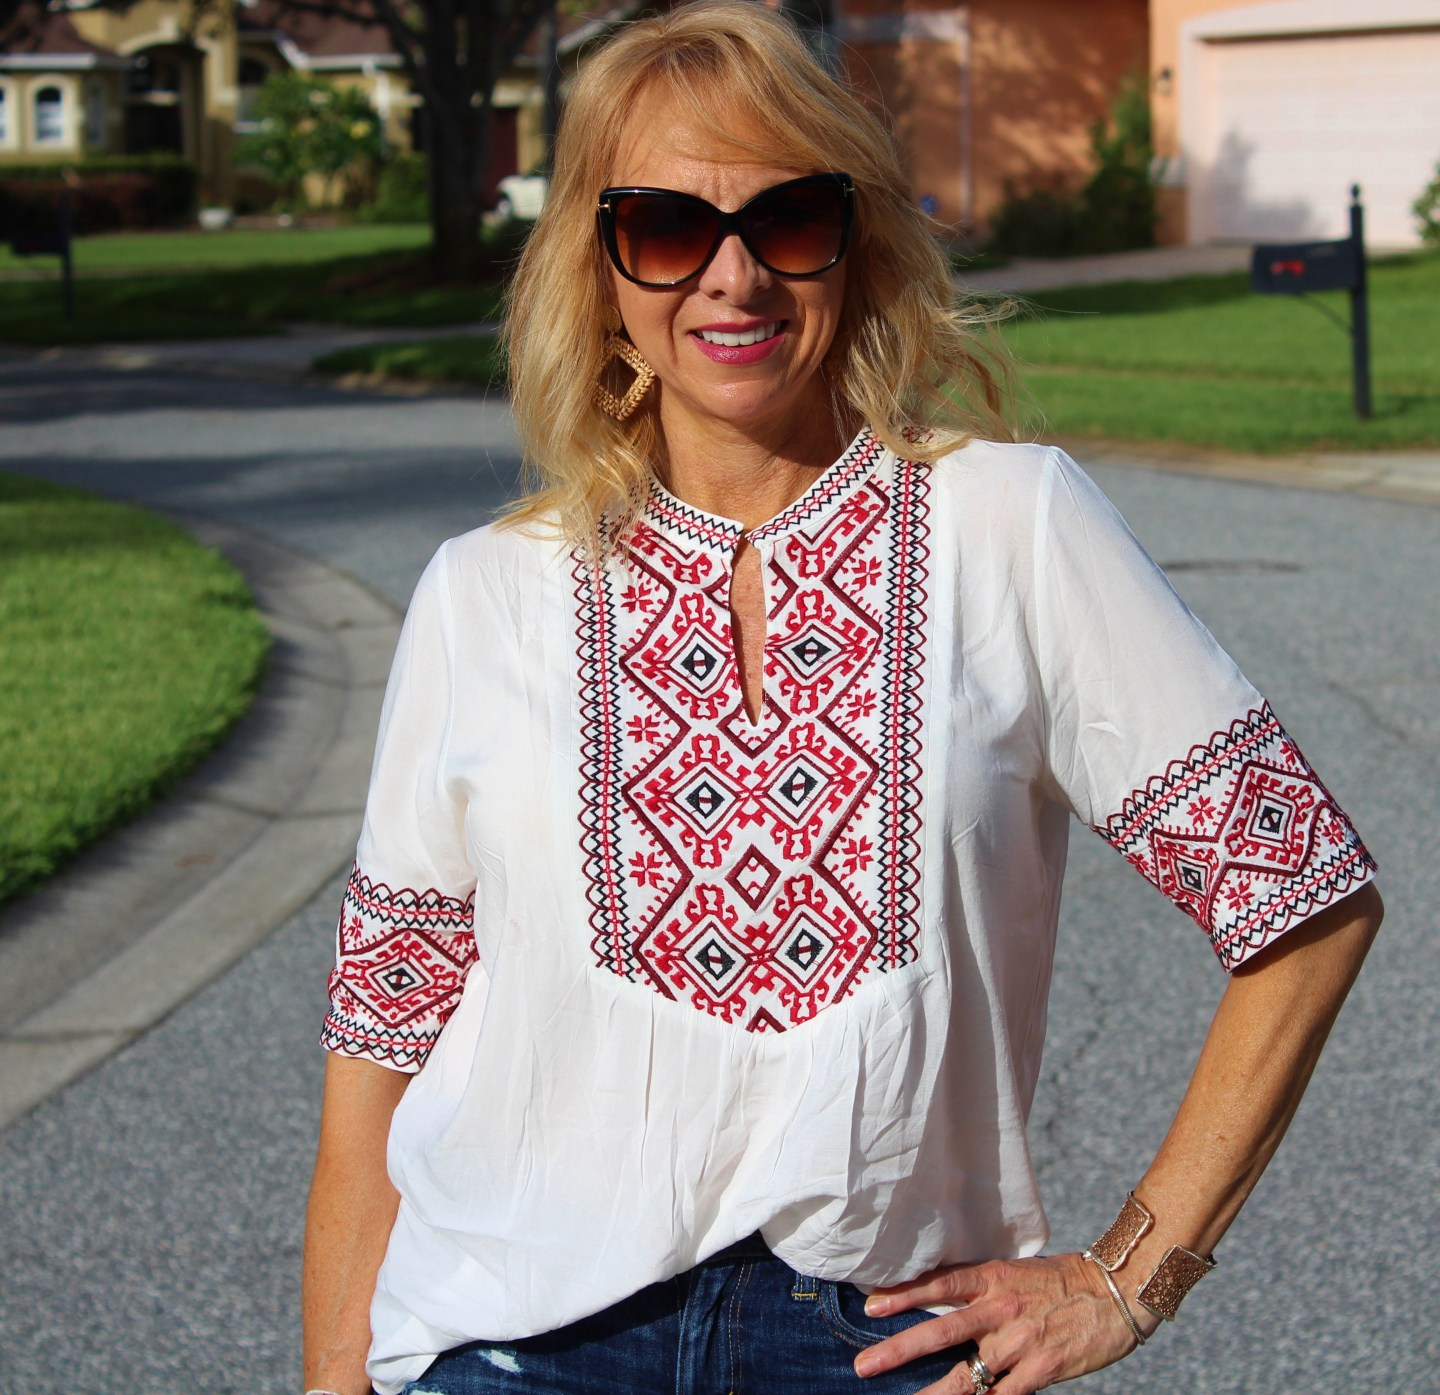 Jean Shorts and Boho Top